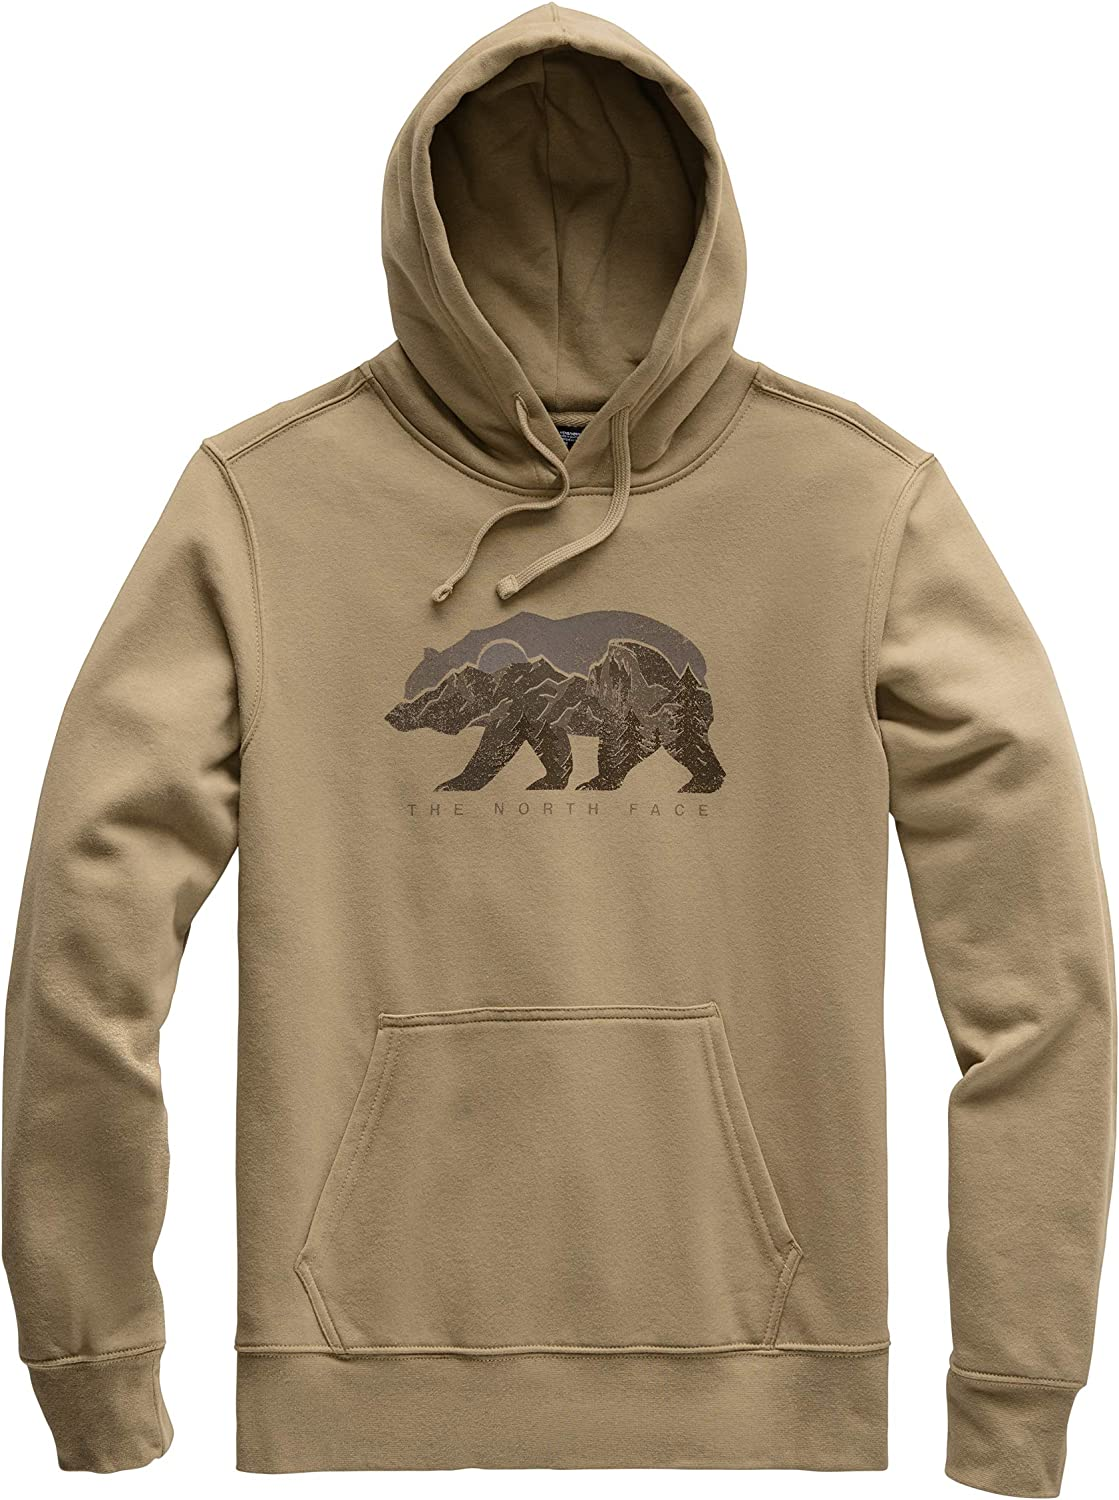 The North Face Mens Bearscape Pullover Hoodie